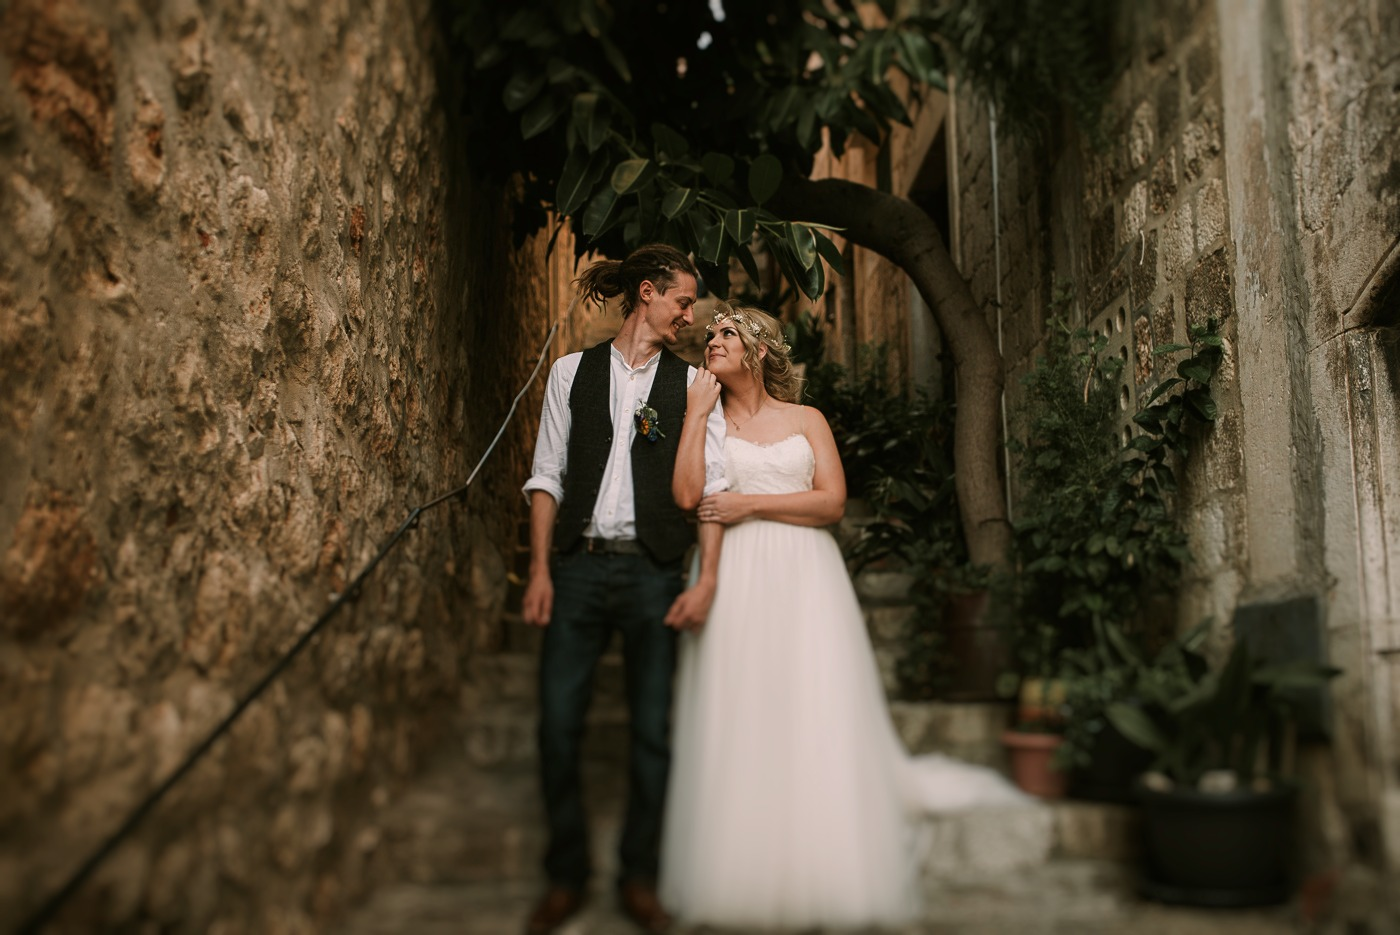 Dubrovnik wedding photographer (151 of 162).jpg